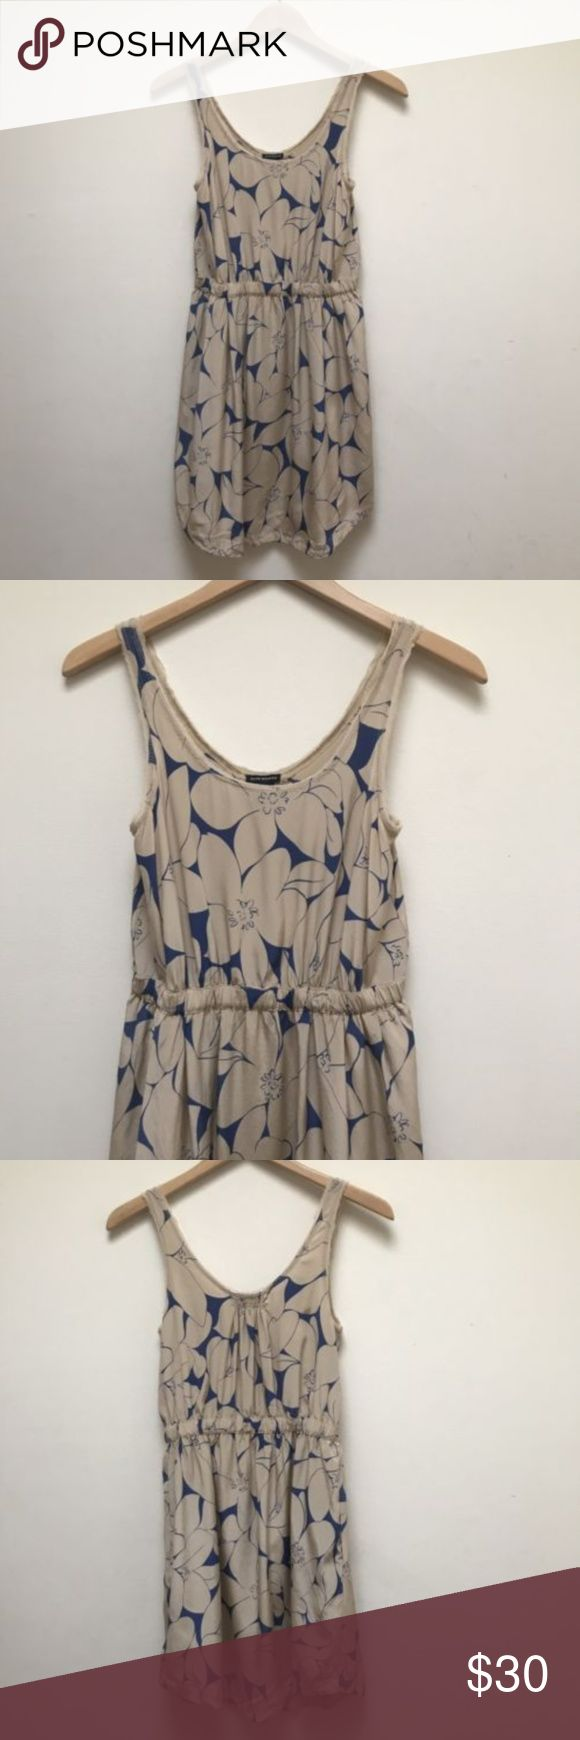 Club Monaco Dress Cream Blue Floral Silk Club Monaco Dress Cream Blue Floral Silk Sleeveless 2-Pc Lined No stains or rips.  Good condition Measurements approximate:  (Garment is lying flat and unstretched) Armpit to Armpit: 15',   Waist: 13',  Length from top: 34.5' Club Monaco Dresses